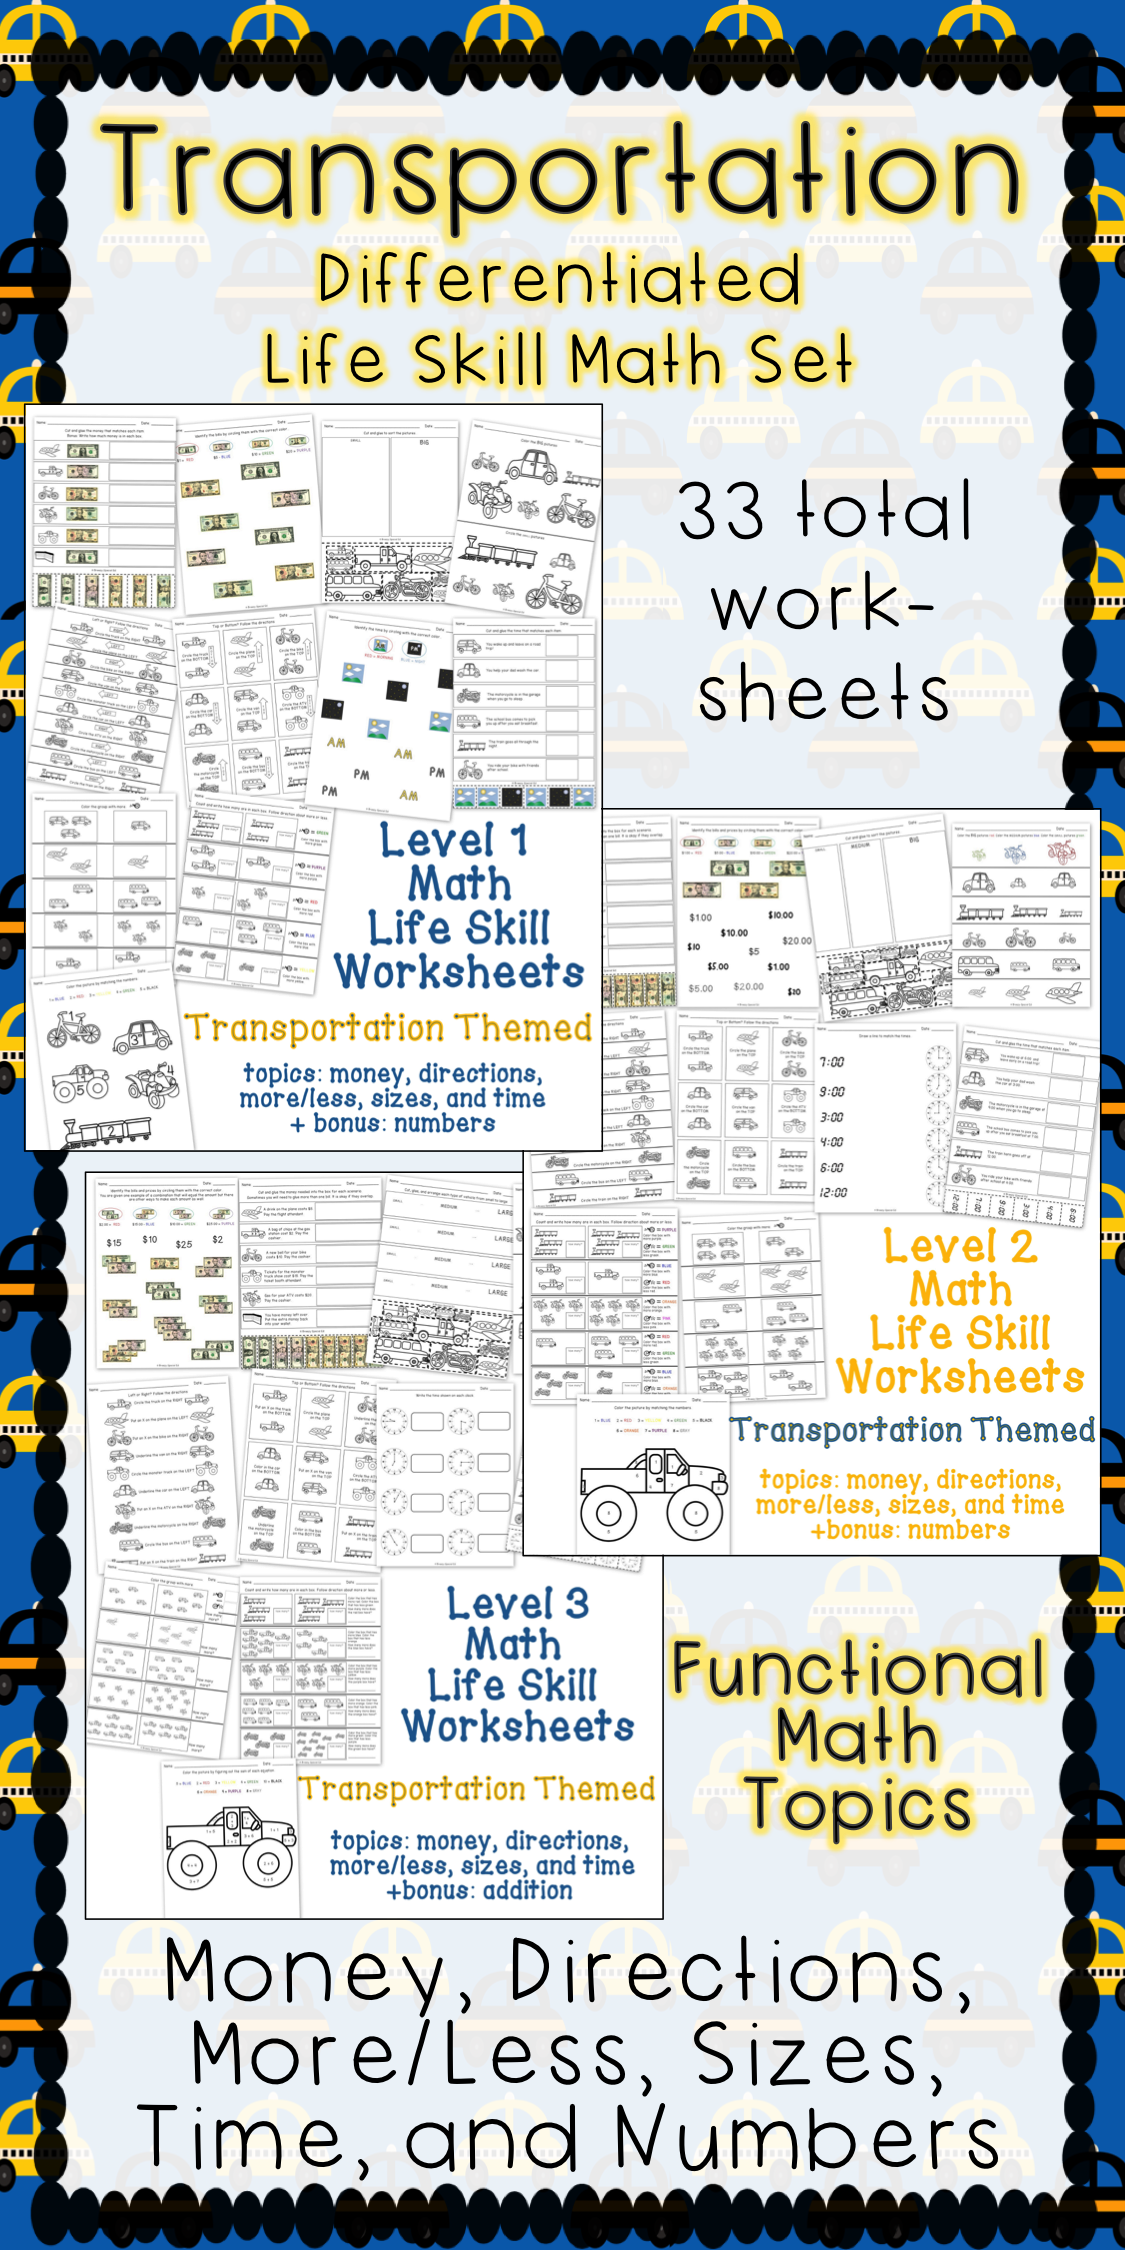 Life Skill Math Worksheets On A Variety Of Topics That Are Already Differentiated For A Variety Of Lea Life Skills Life Skills Classroom Life Skills Activities